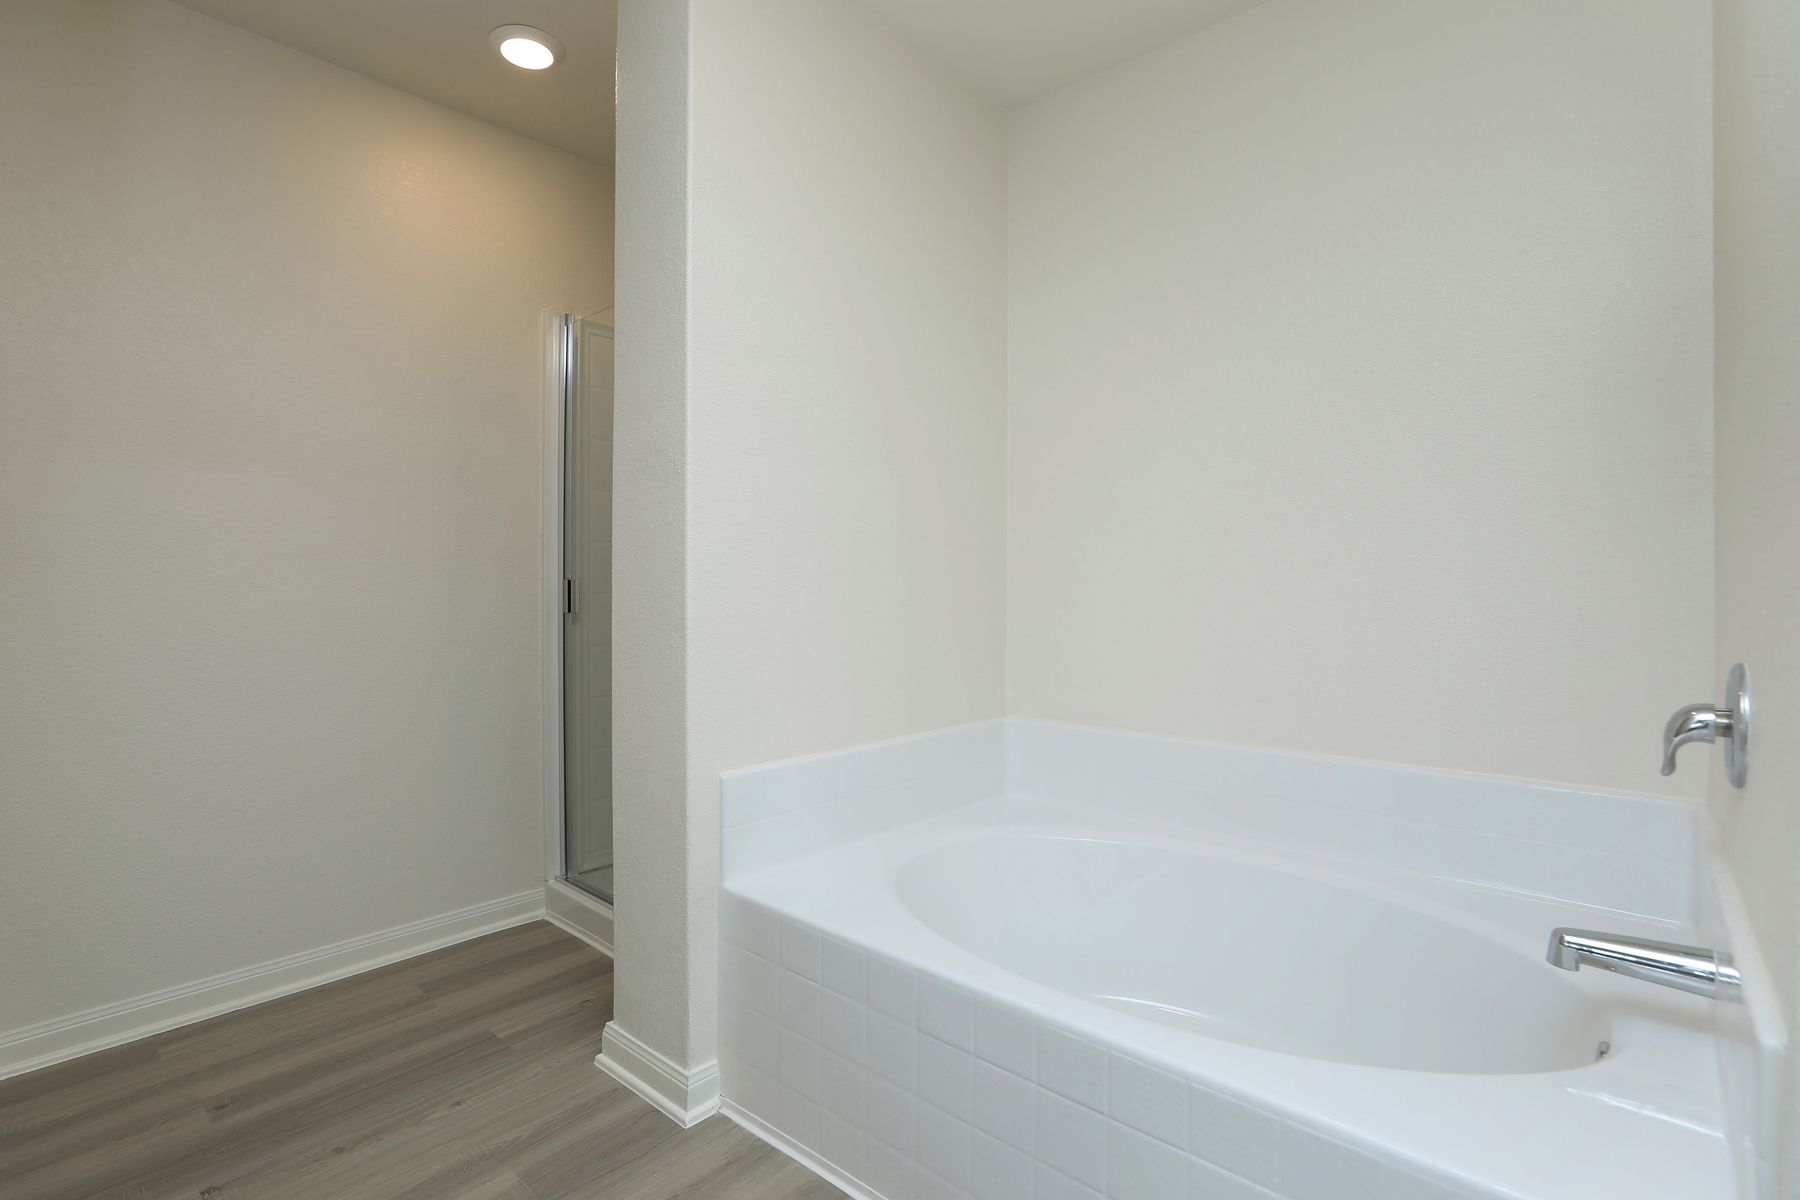 Bathroom featured in the Rayburn By LGI Homes in Houston, TX